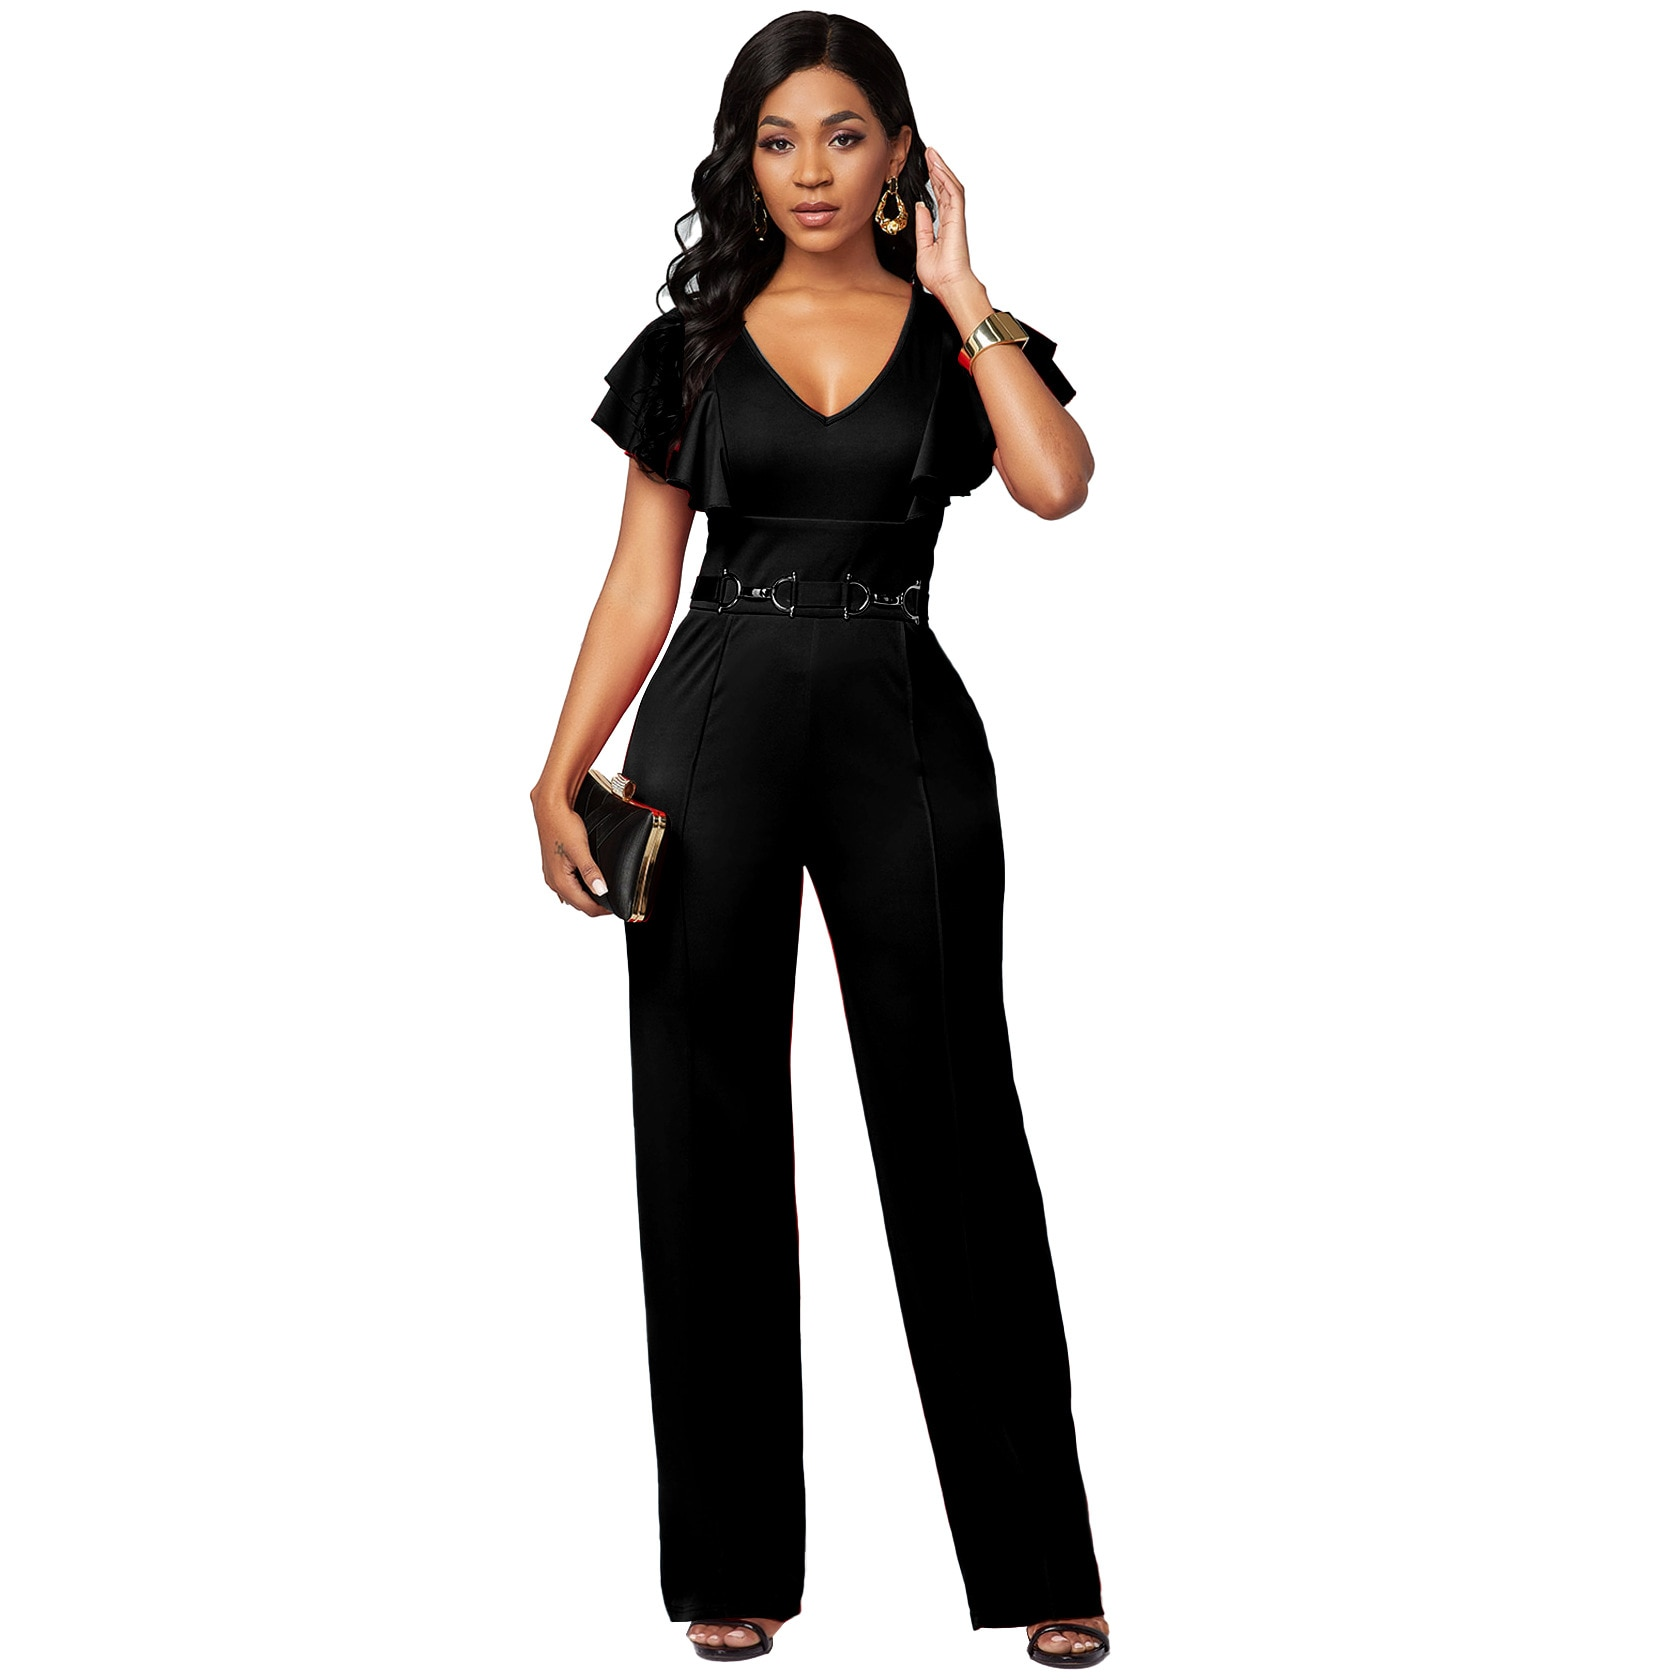 New European and American Sexy Casual Fashion Long-sleeved V-neck Women's Jumpsuit Jump Suits for Women